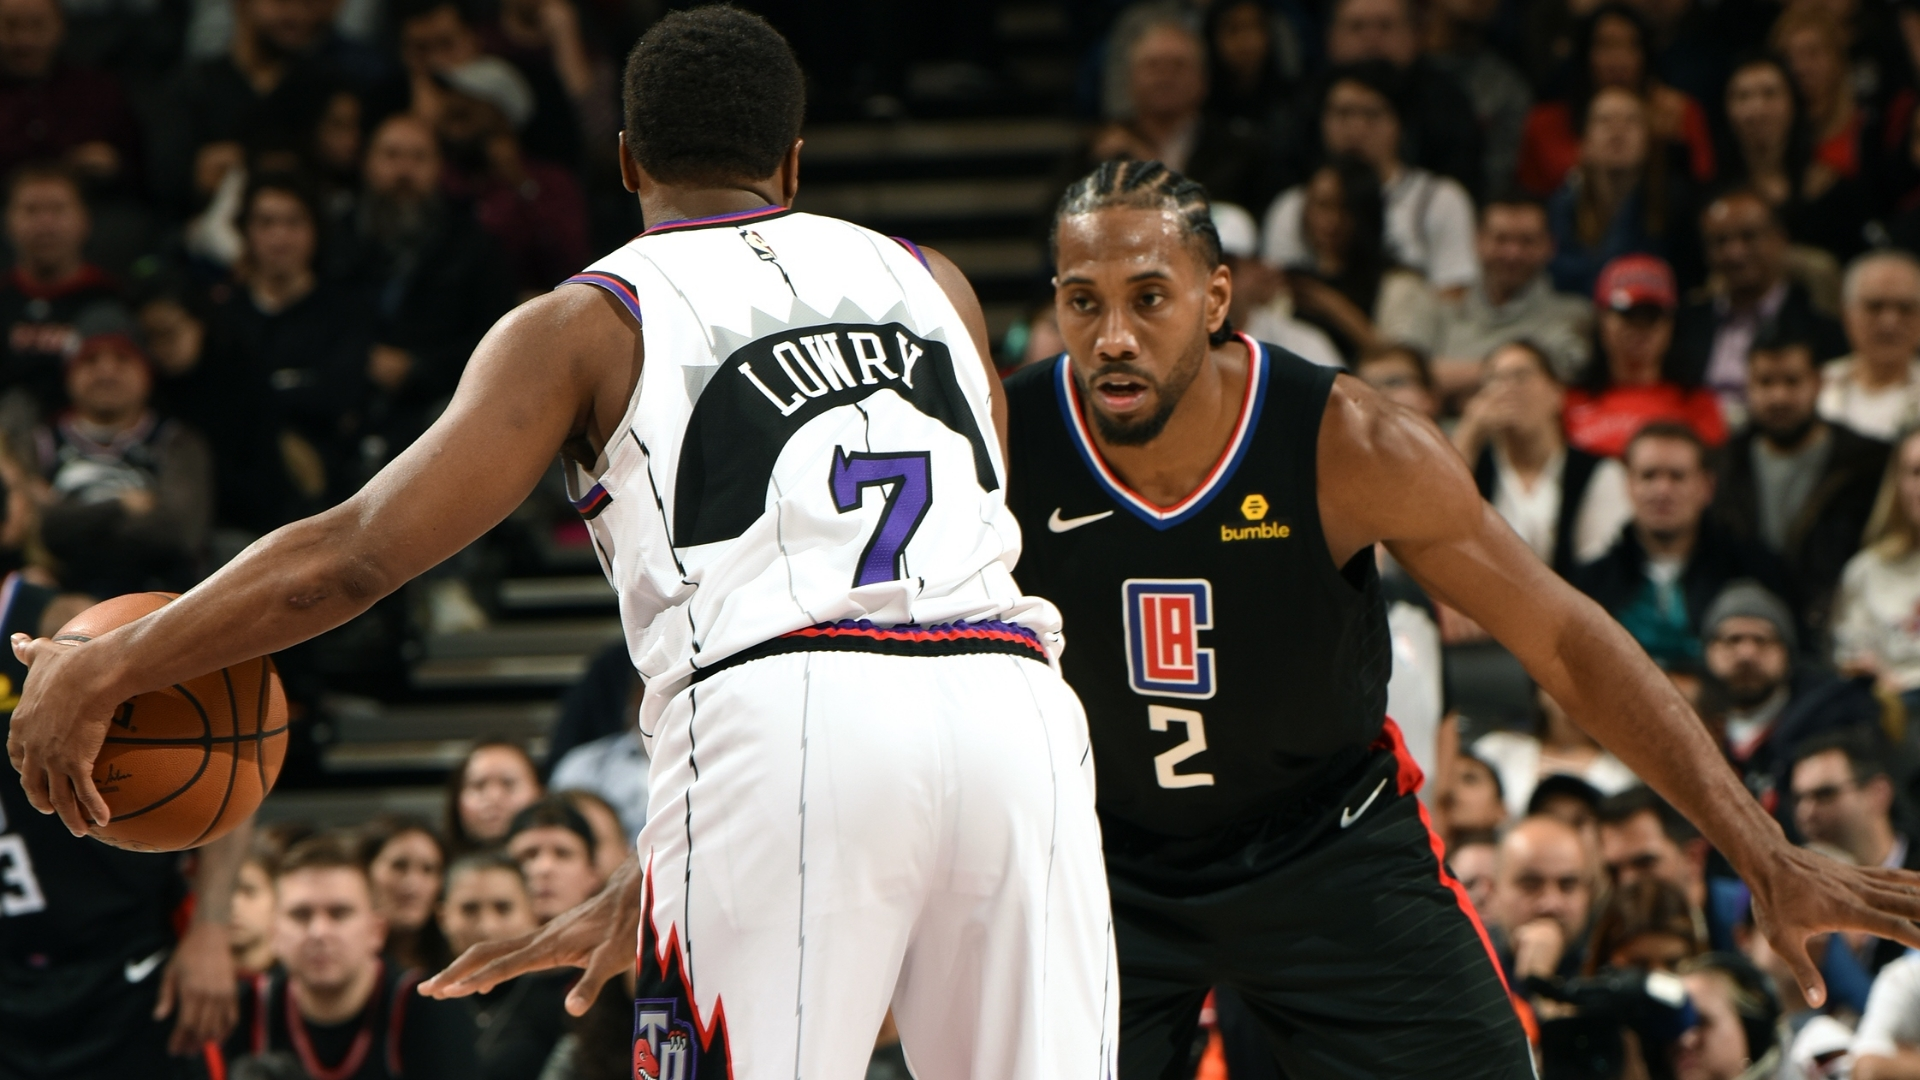 Toronto Raptors vs. LA Clippers: Game preview, injury report, TV channel, start time and betting odds   NBA.com Canada   The official site of the NBA